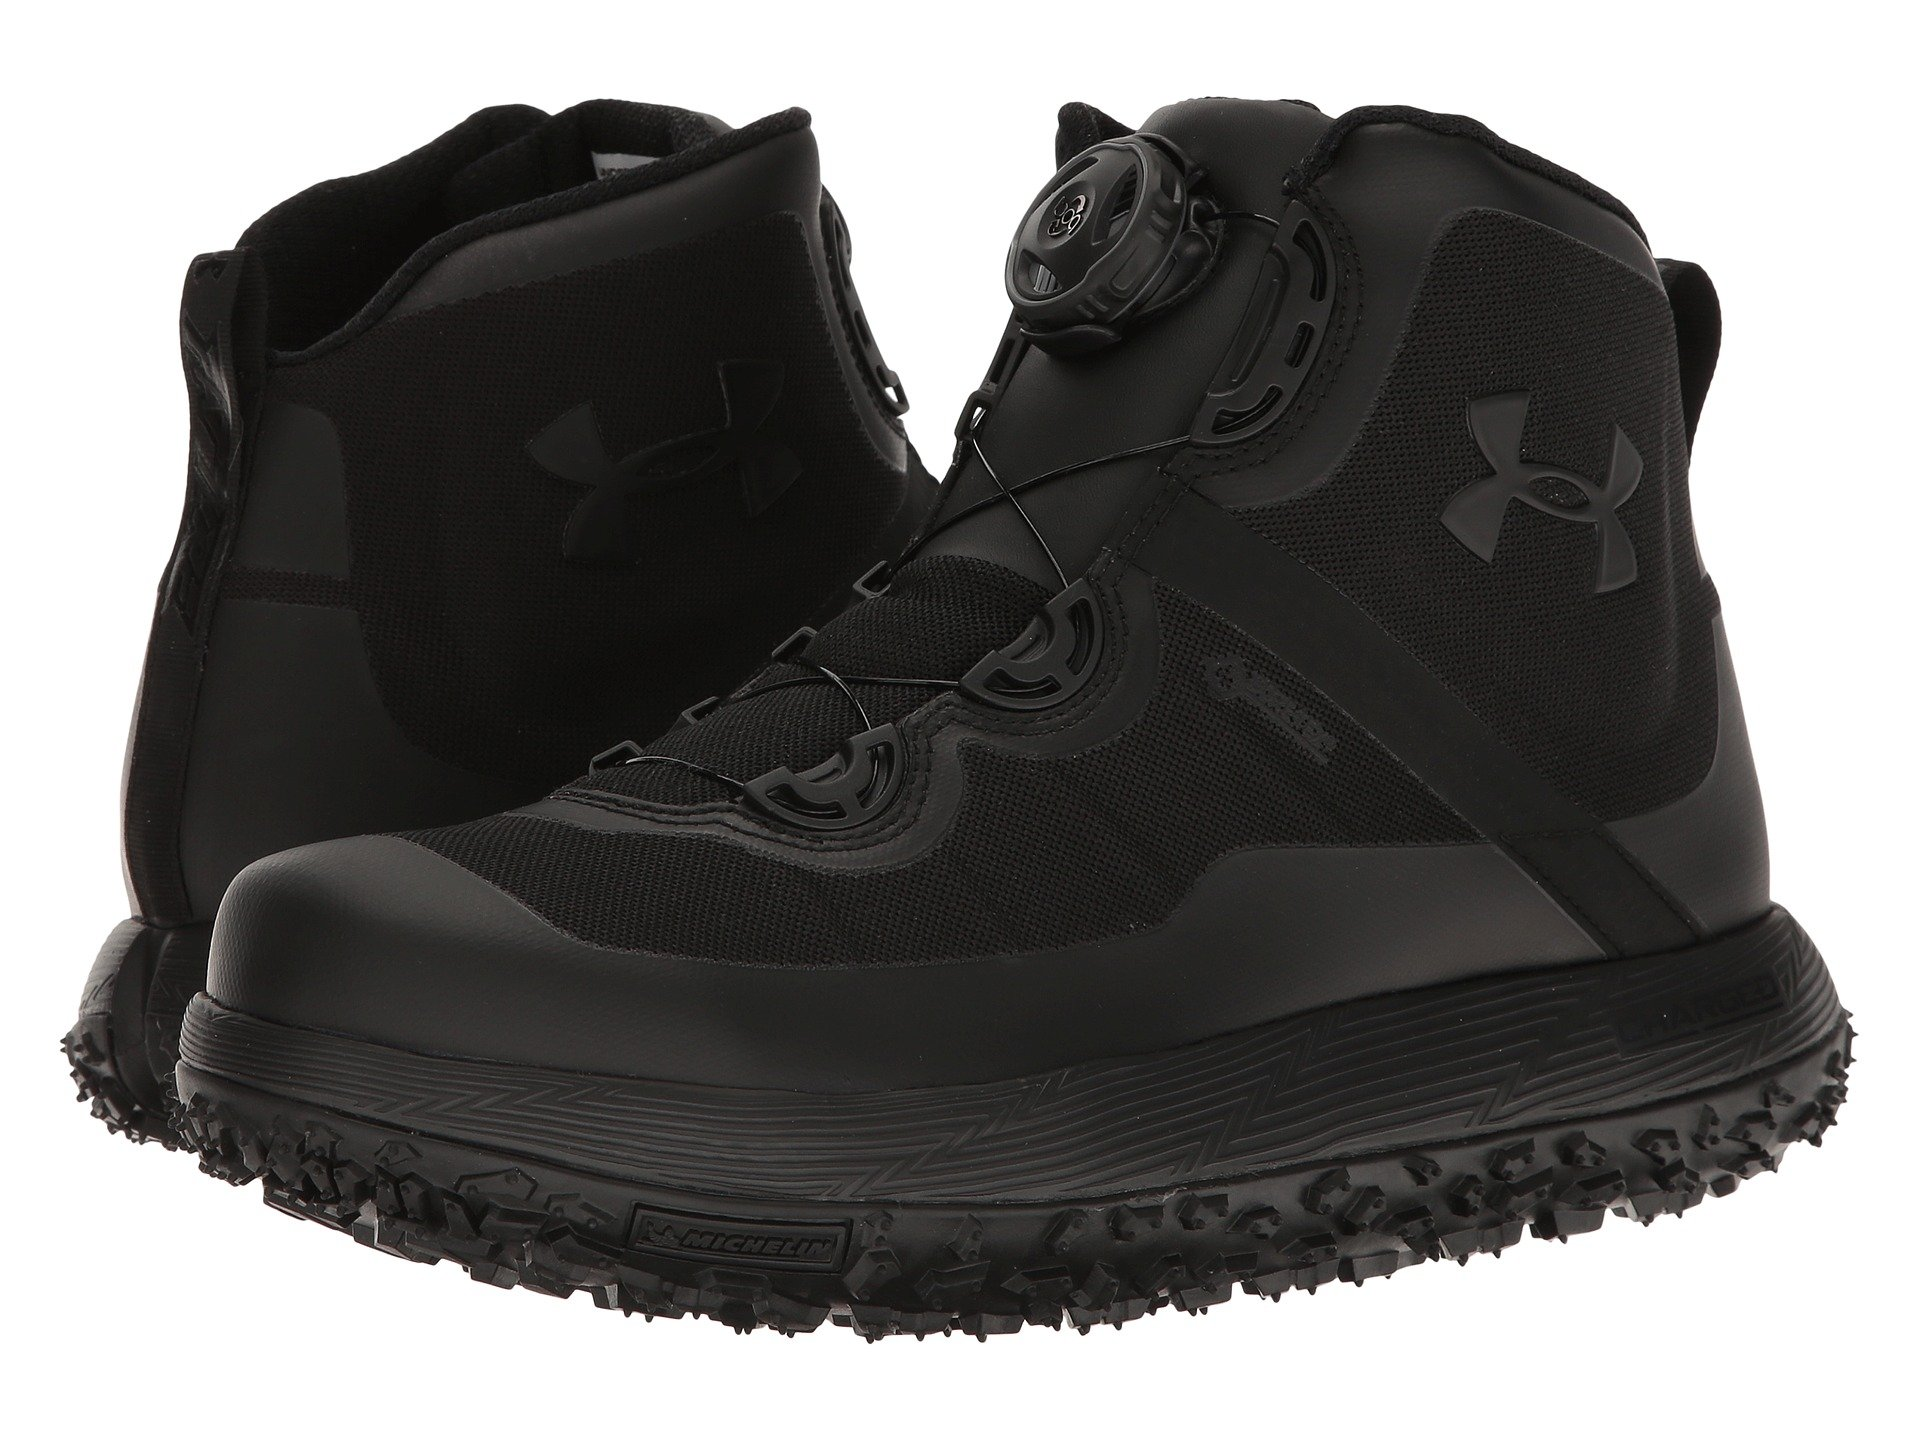 090517c7423 Men s Under Armour Boots + FREE SHIPPING